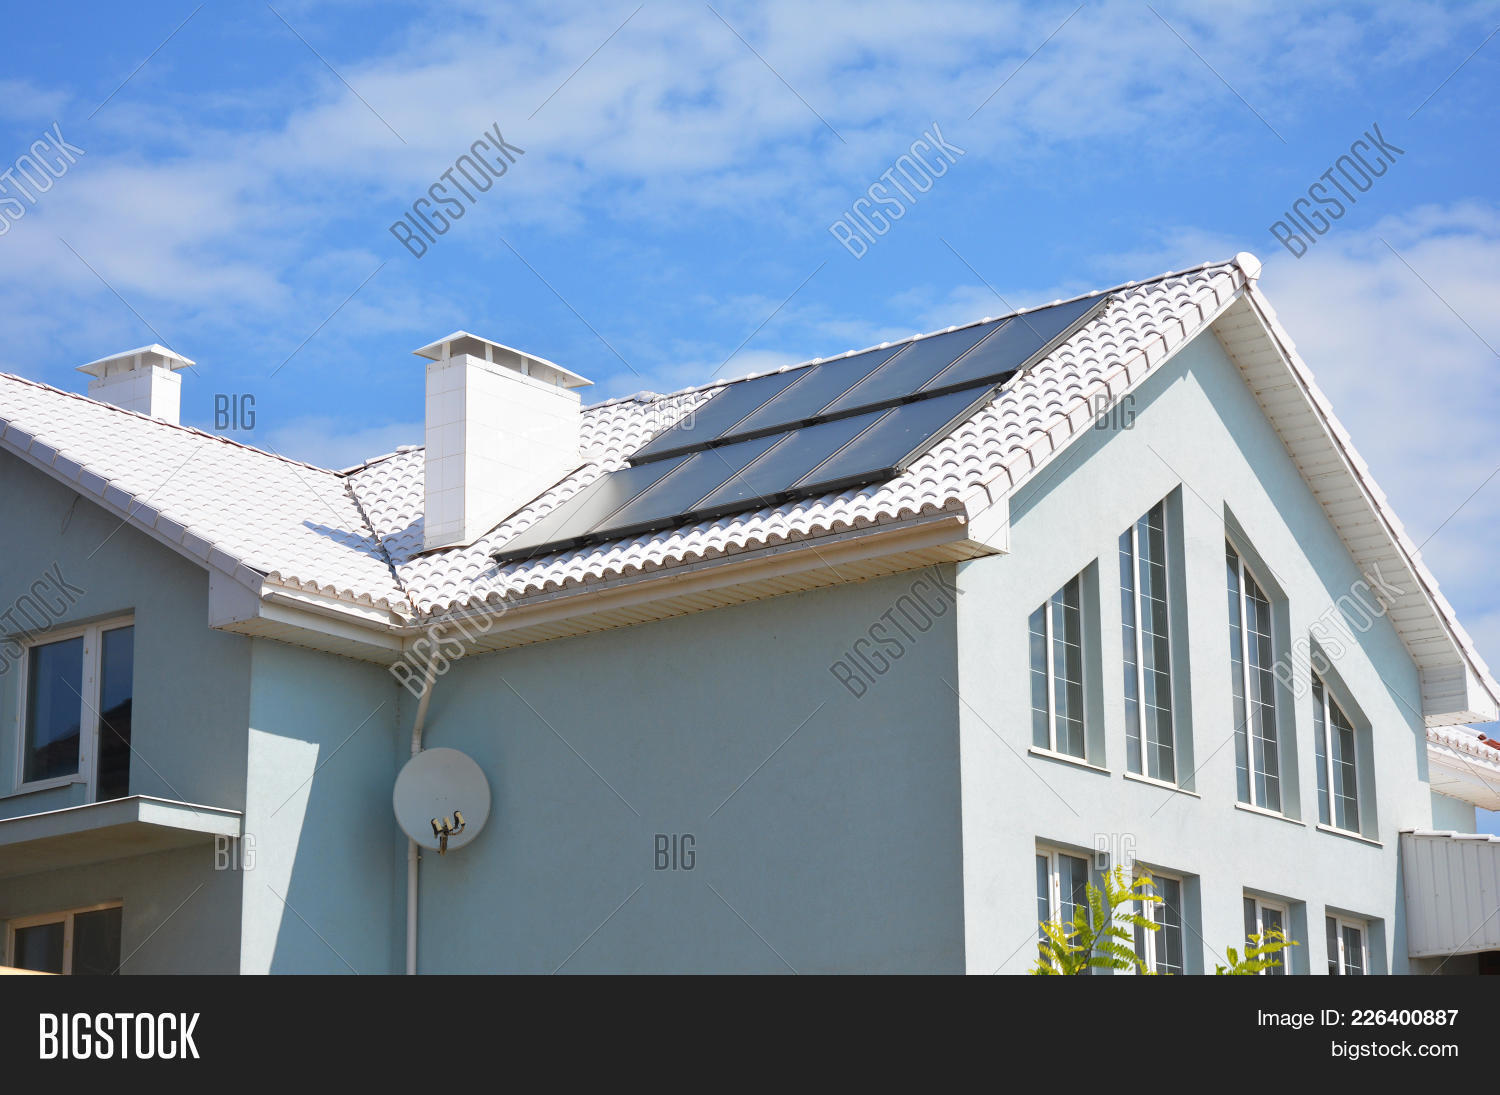 White Clay Tiled Roof Image & Photo (Free Trial) | Bigstock